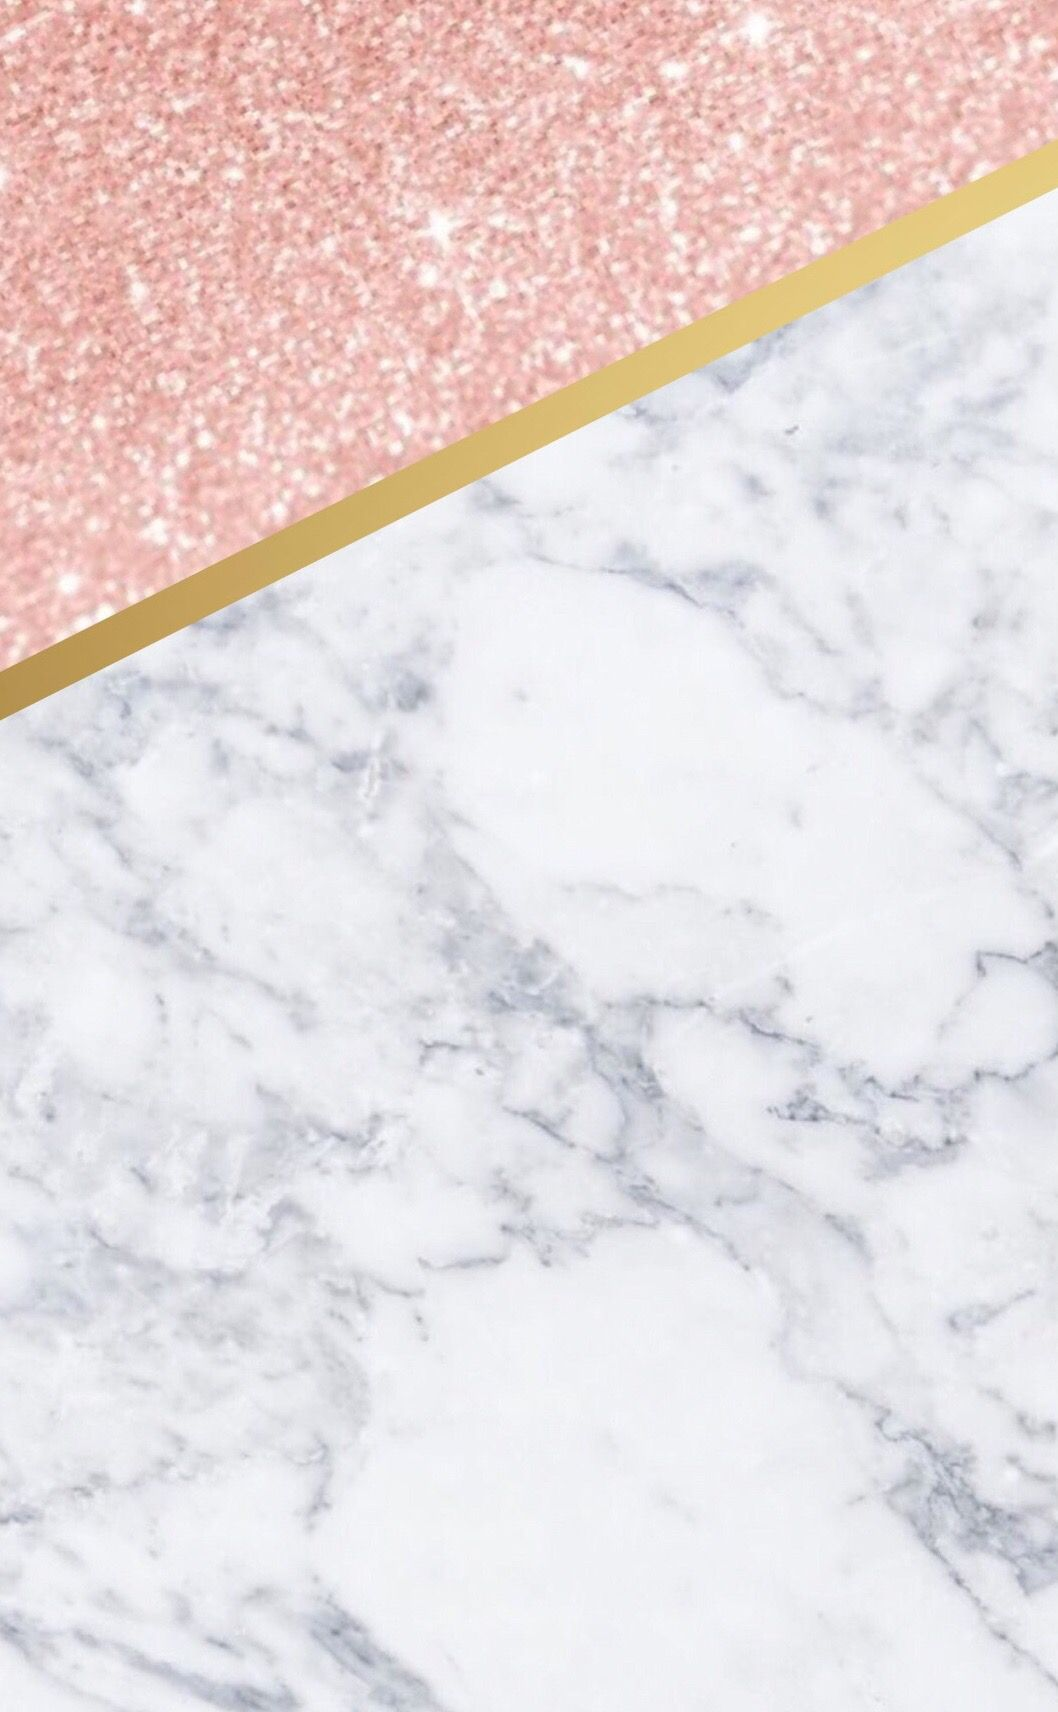 Cute Iphone Wallpaper Marble Rose Gold And Gold